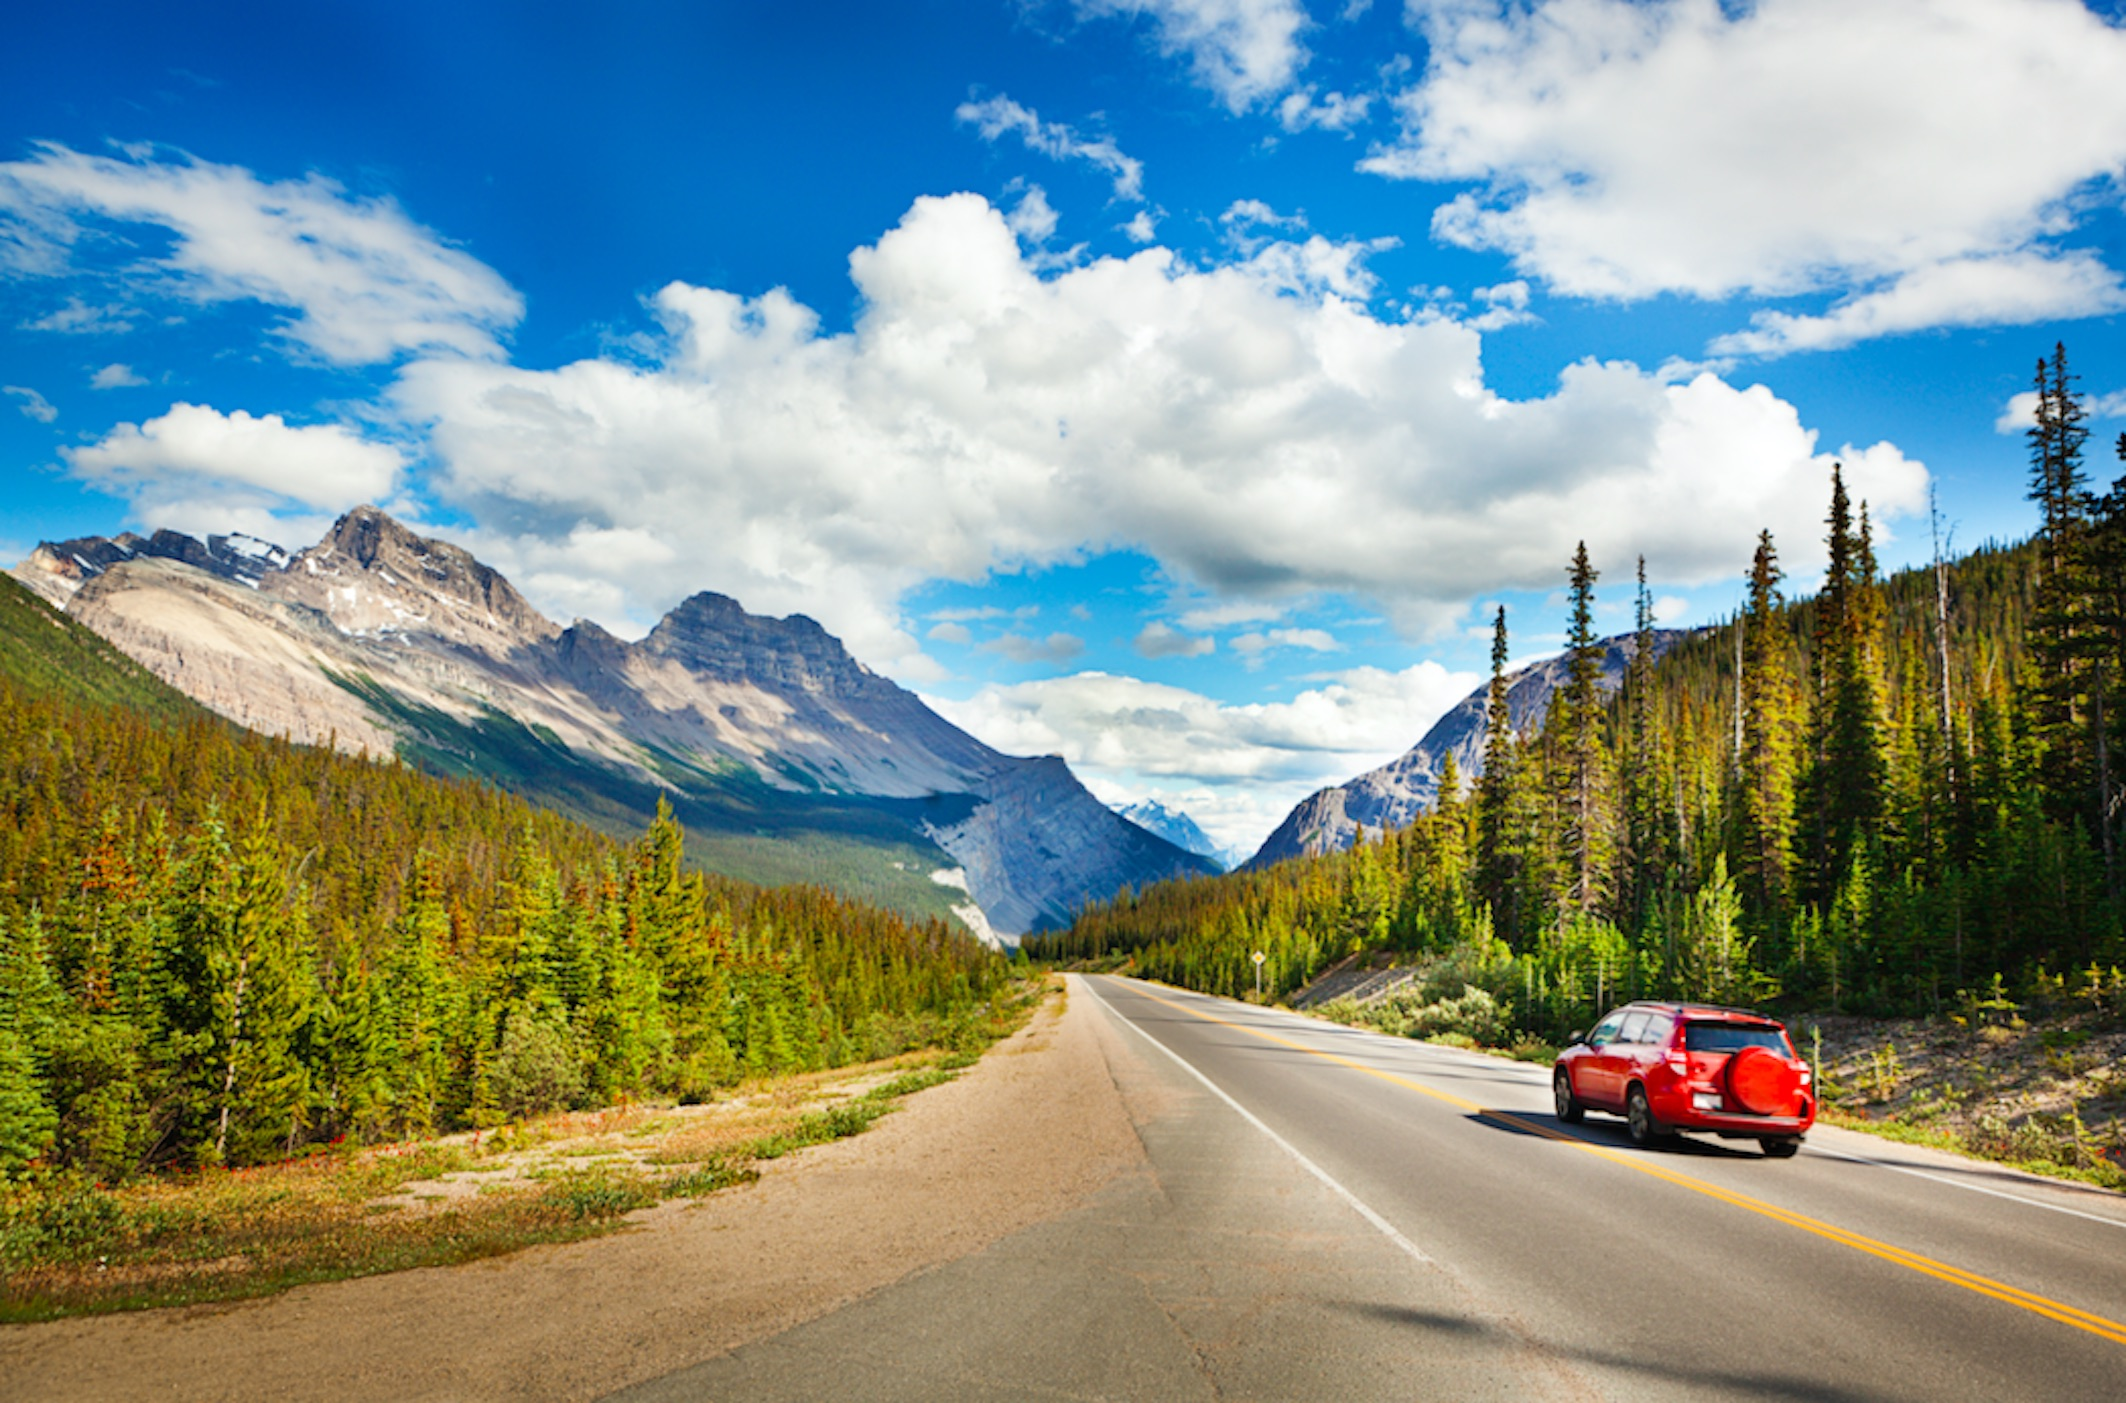 Road Trip Quotes 10 Quotes That Will Make You Hit The Road